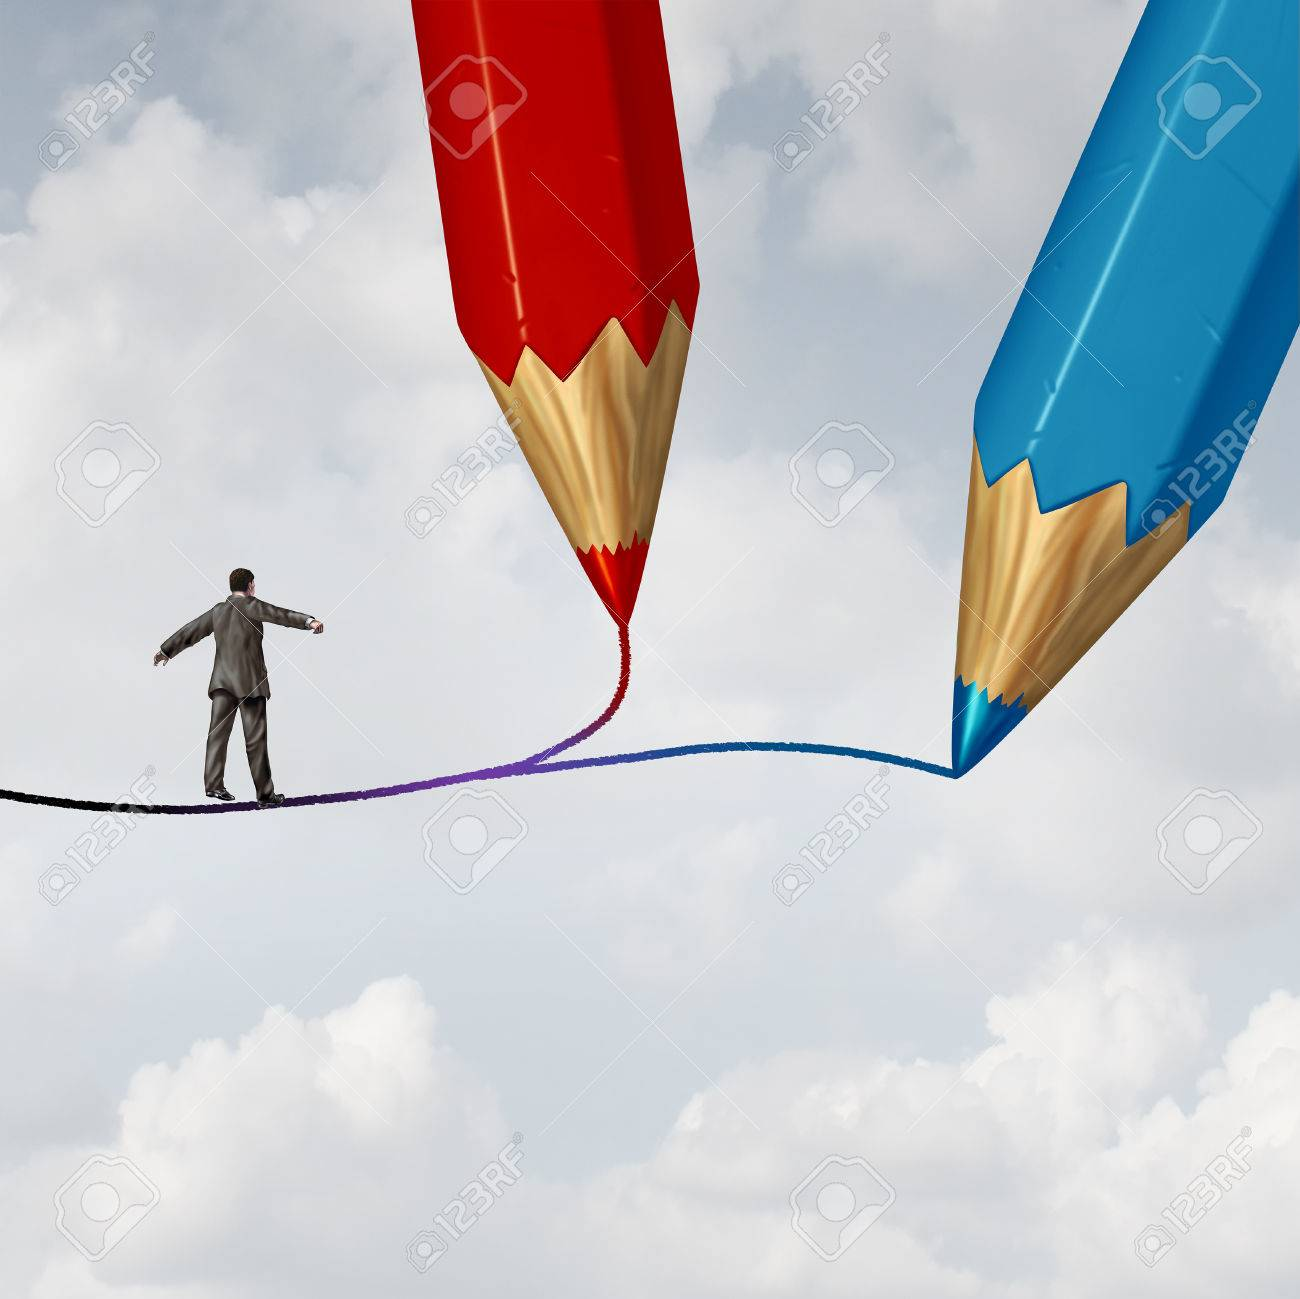 Concept of business direction as a businessman walking on a highwire drawn by two pencils as a crossroad challenge to choose the correct path or pathway to success with 3D illustration elements. Stock Illustration - 56997805